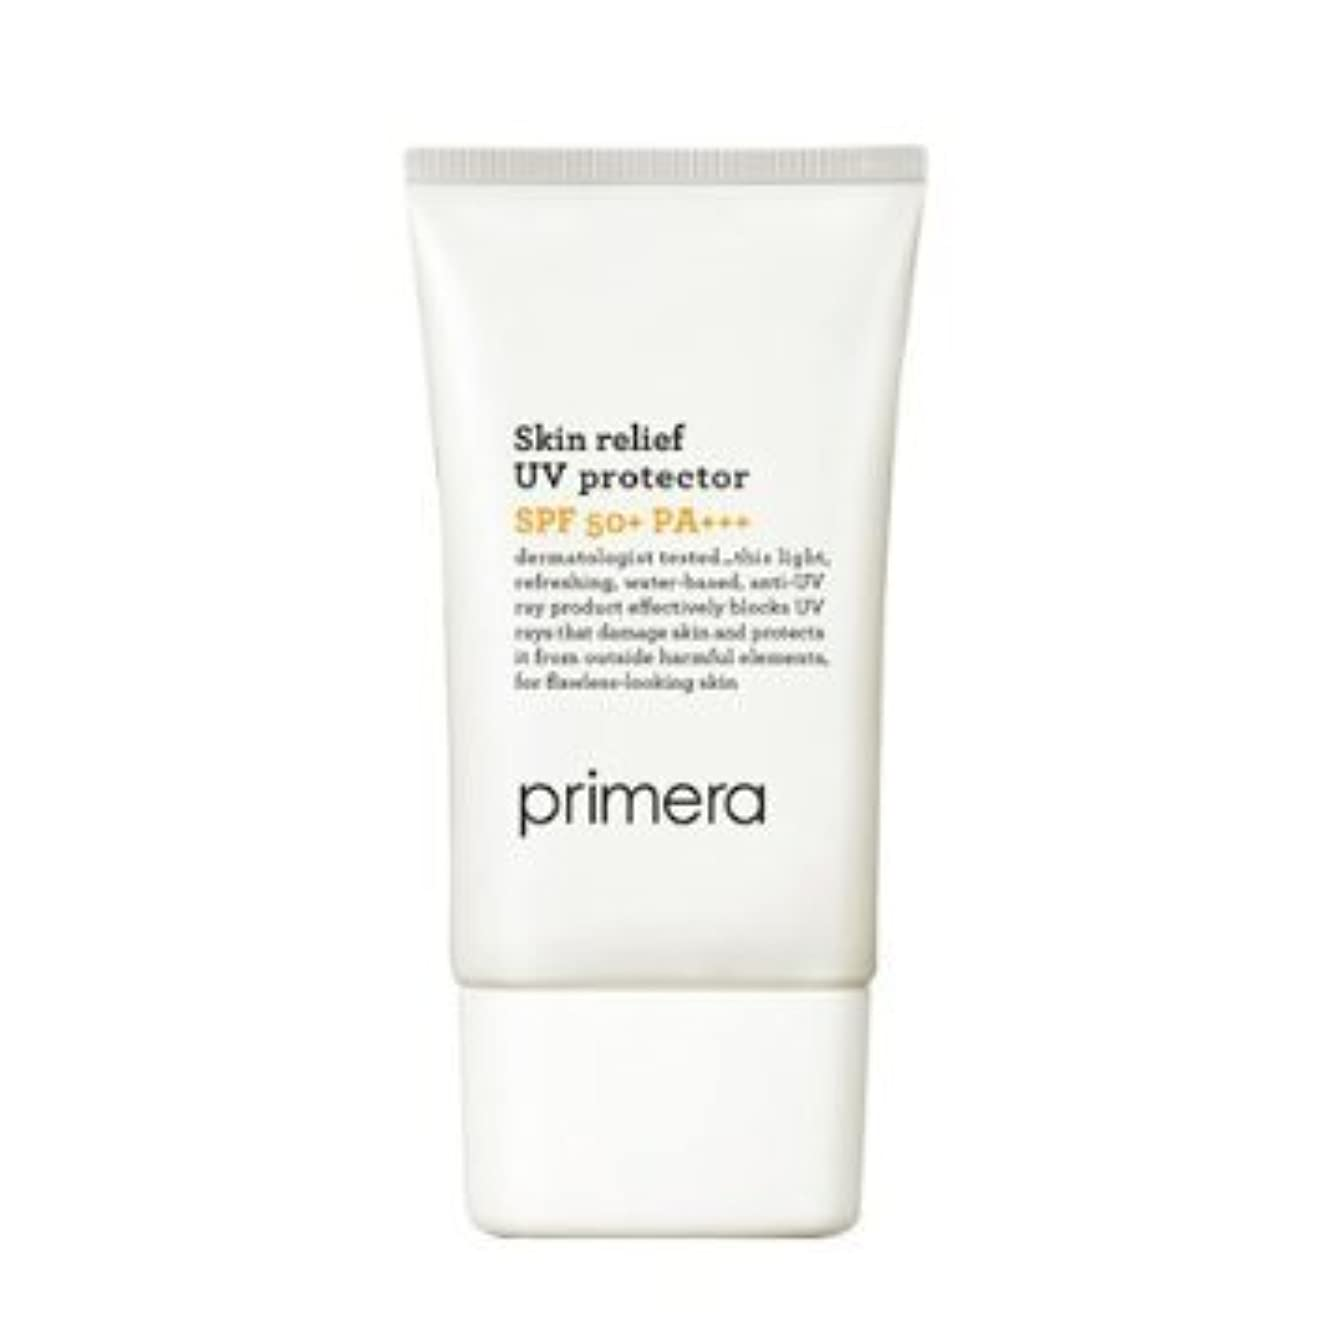 コック違反受け入れKorean Cosmetics, Amorepacific Primera Skin Relief UV Protector SPF50+ PA+++ 50ml[行輸入品]